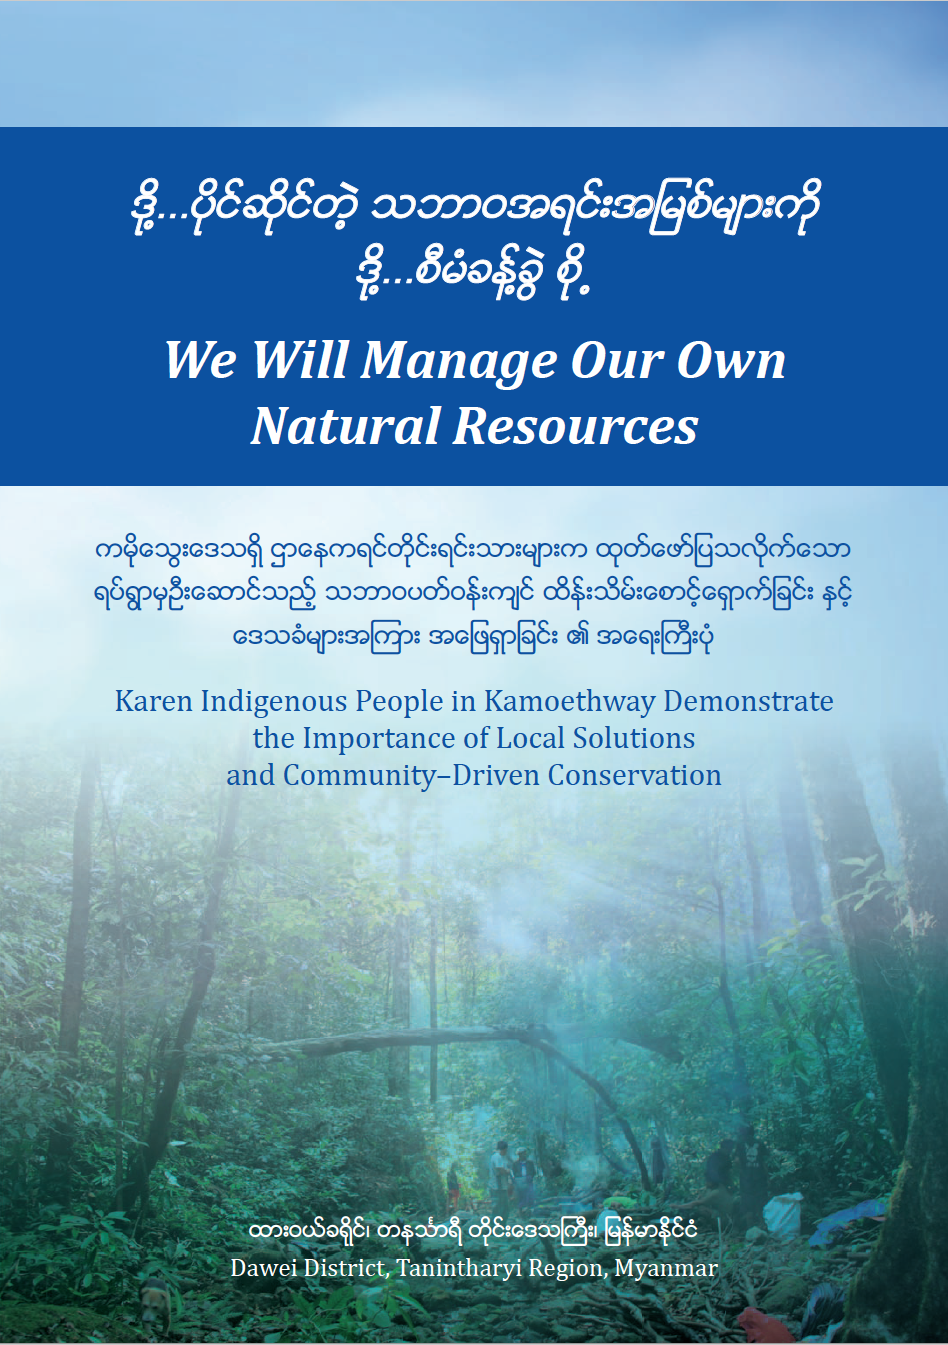 We Will Manage Our Own Natural Resources